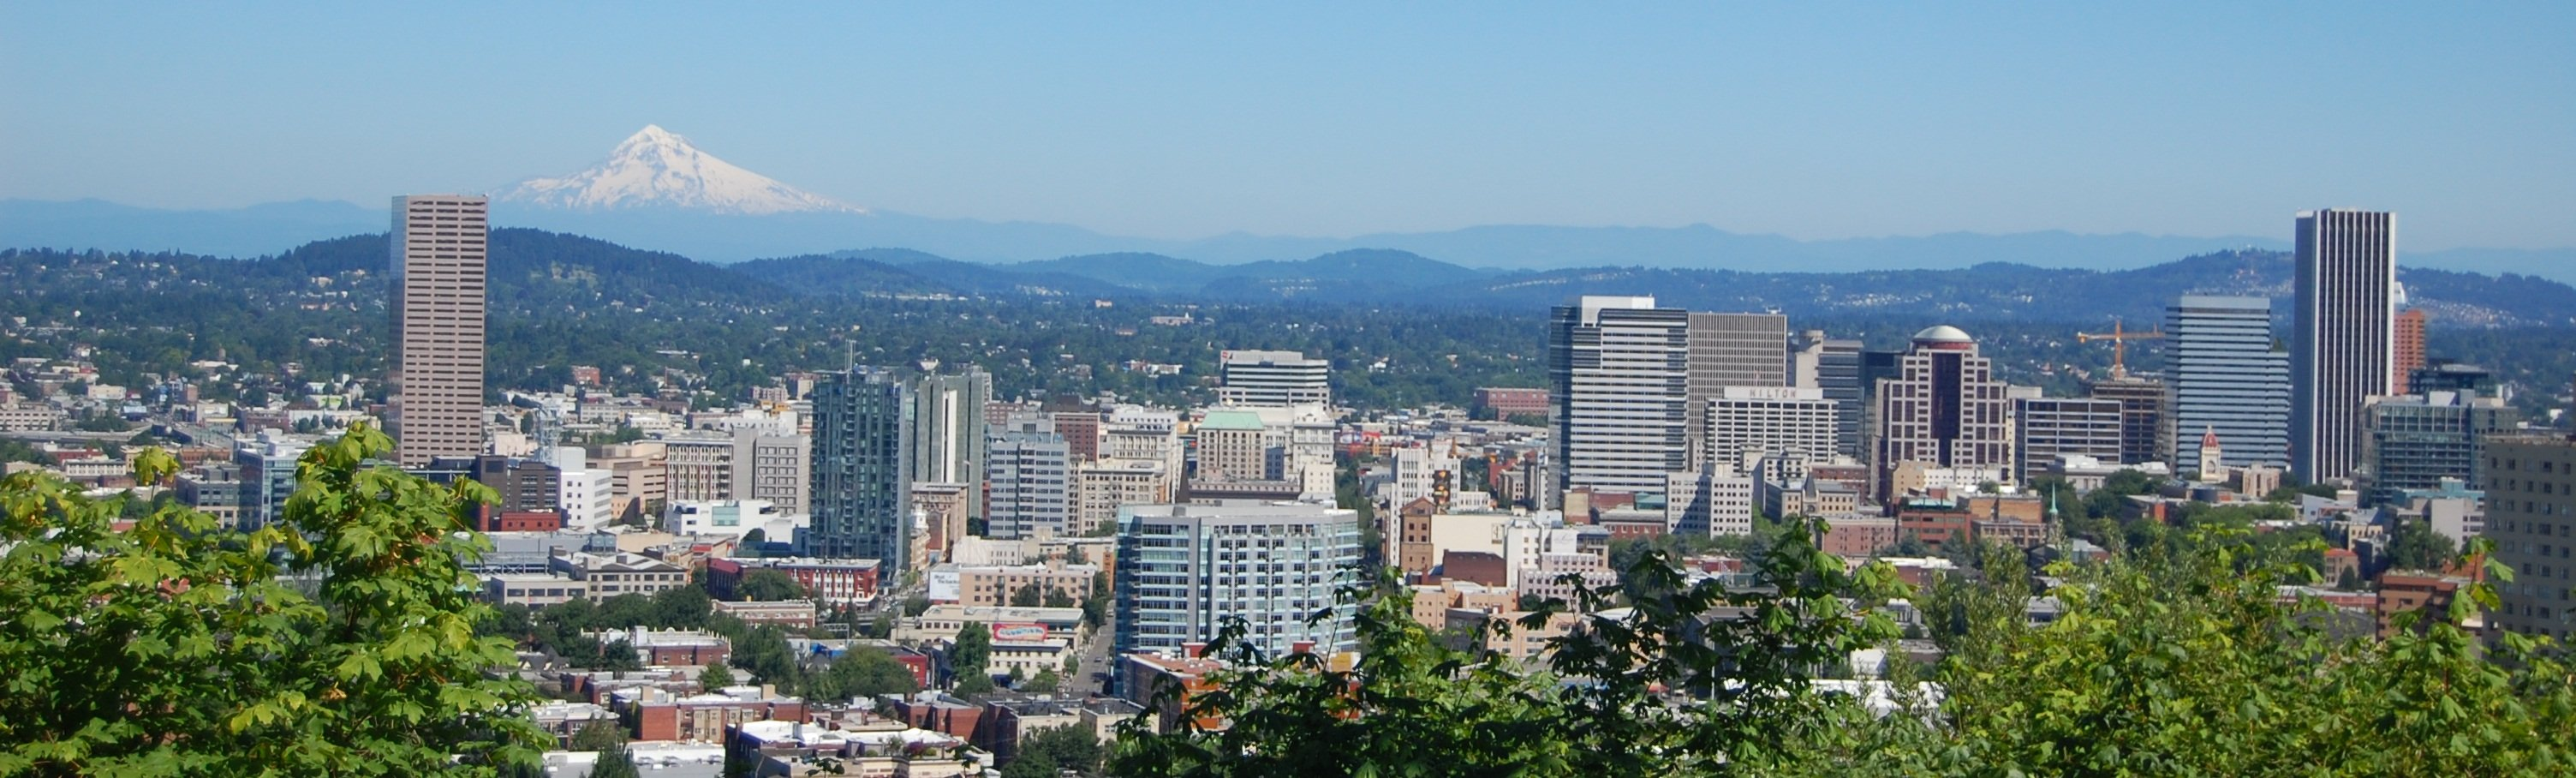 A stunning view of Northwest Portland with a view of Mount Hood.